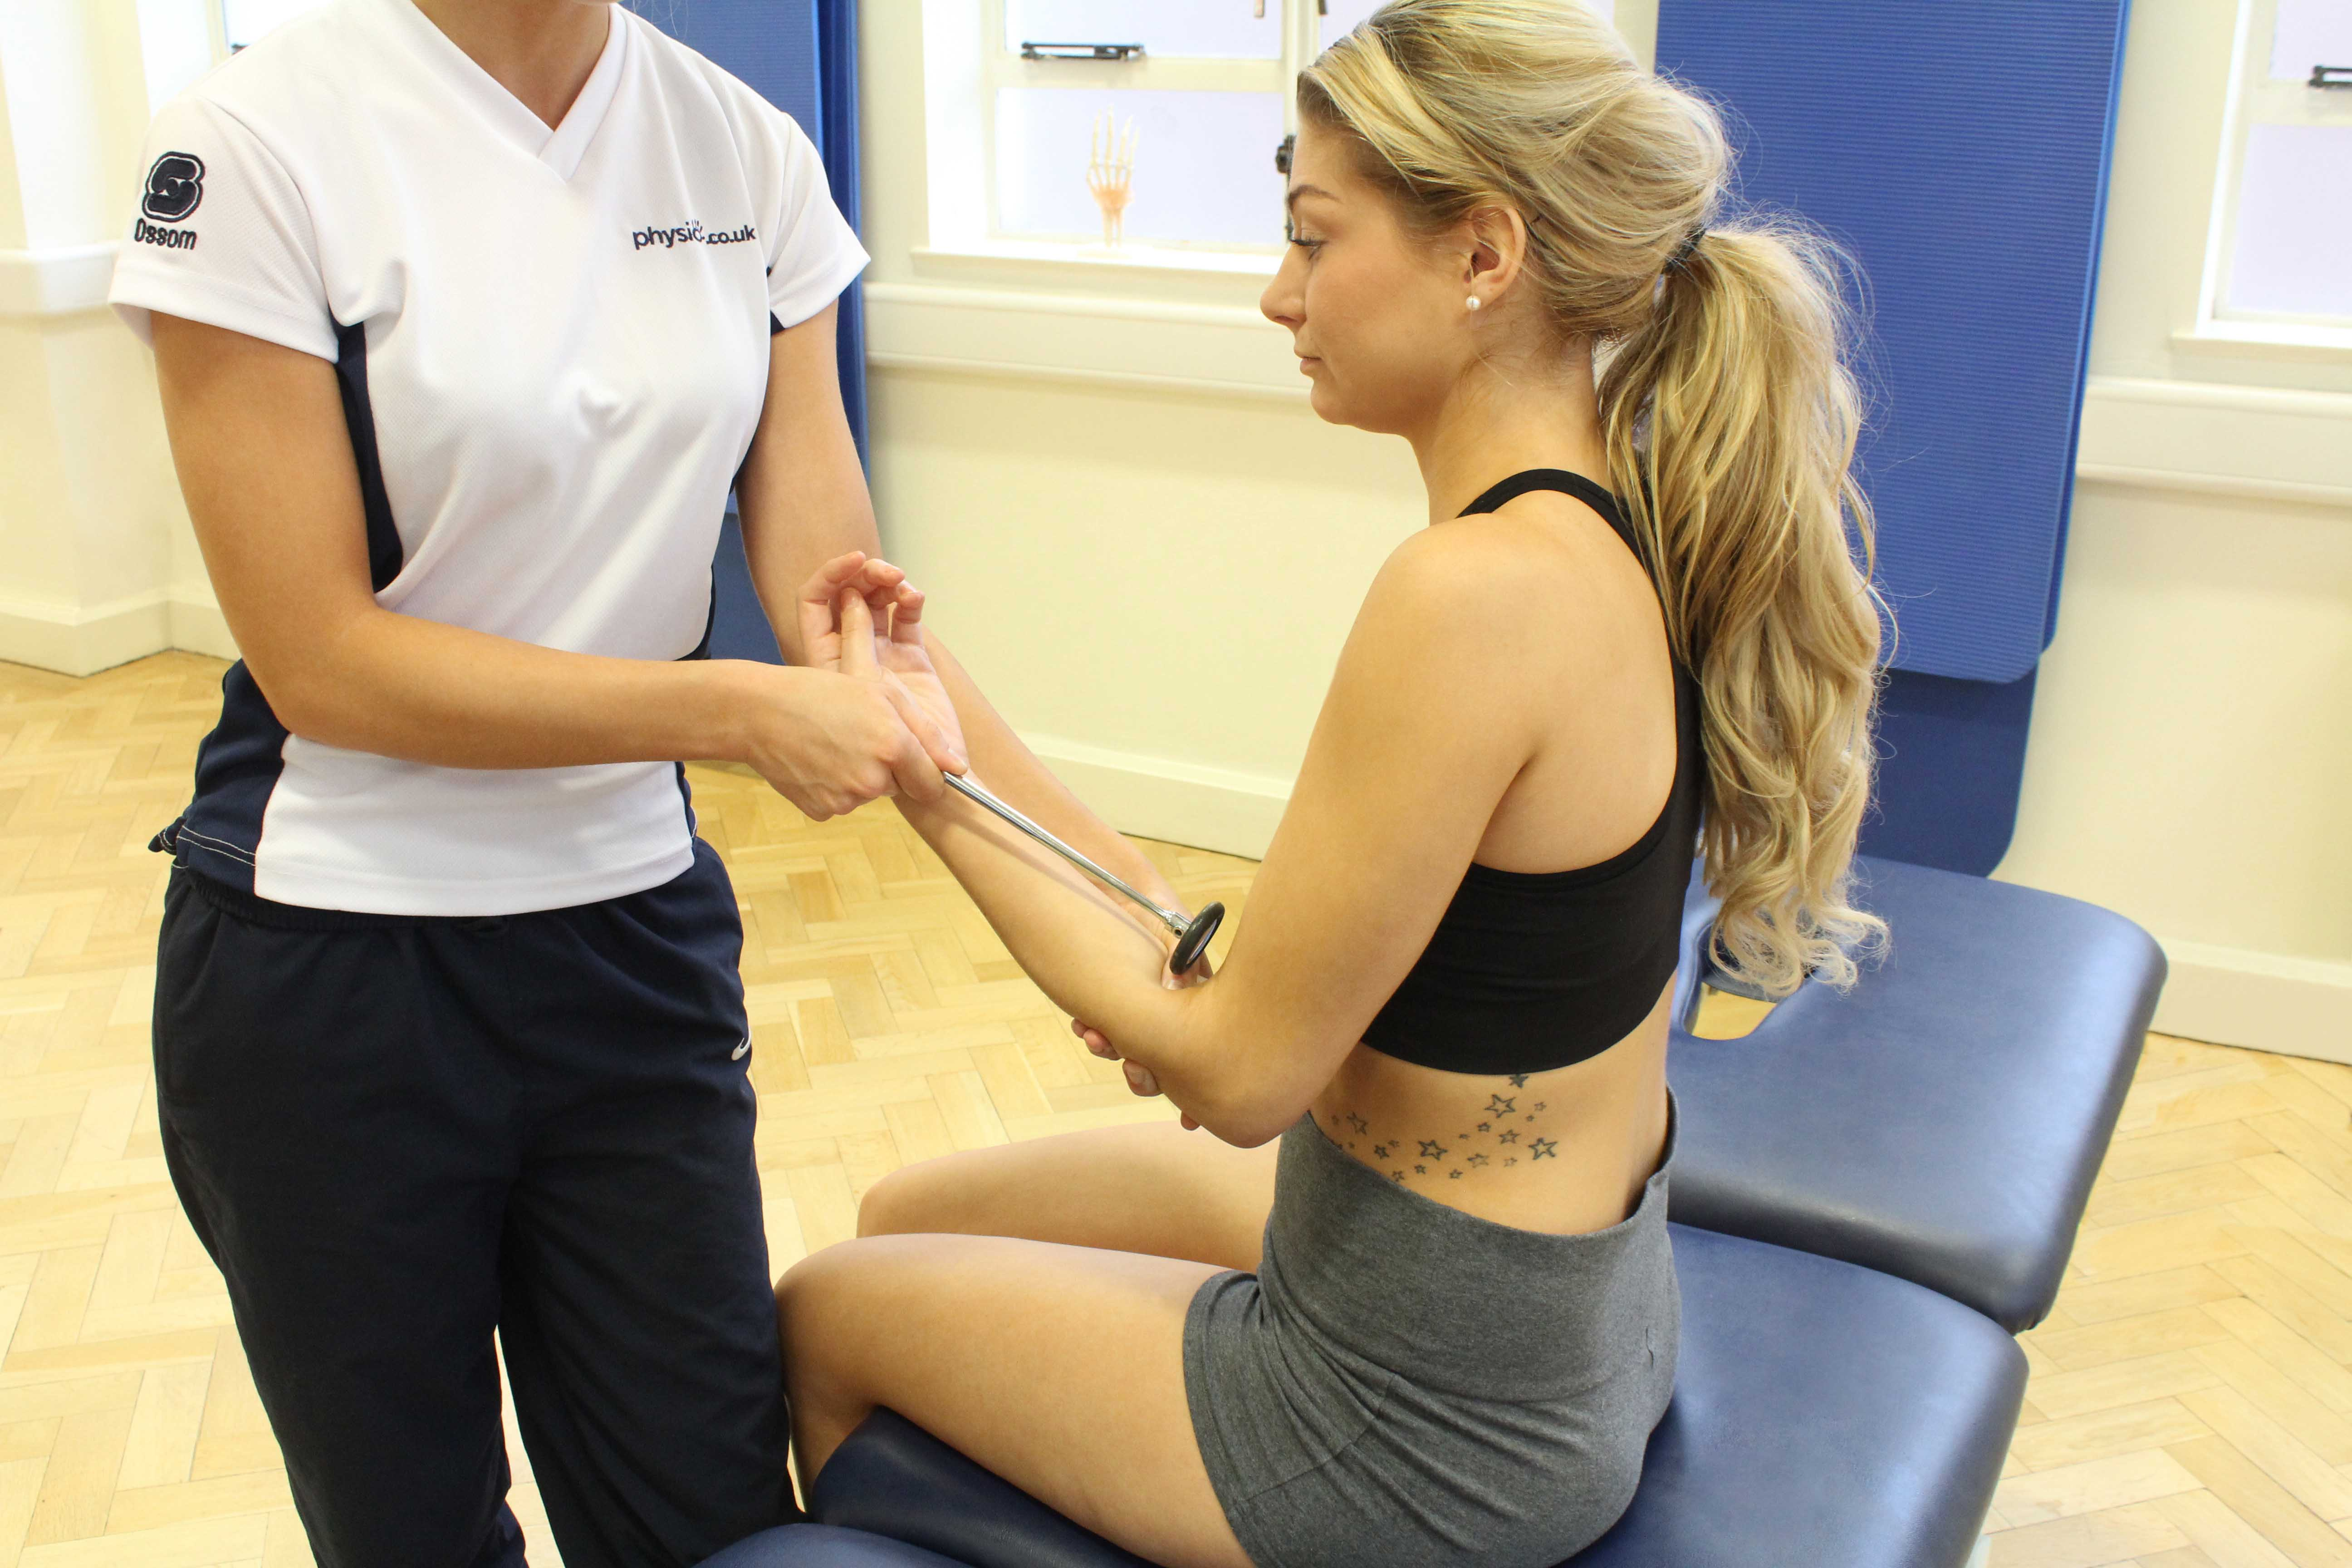 Muscle tendon reflex testing as part of an assessment by a physiotherapist